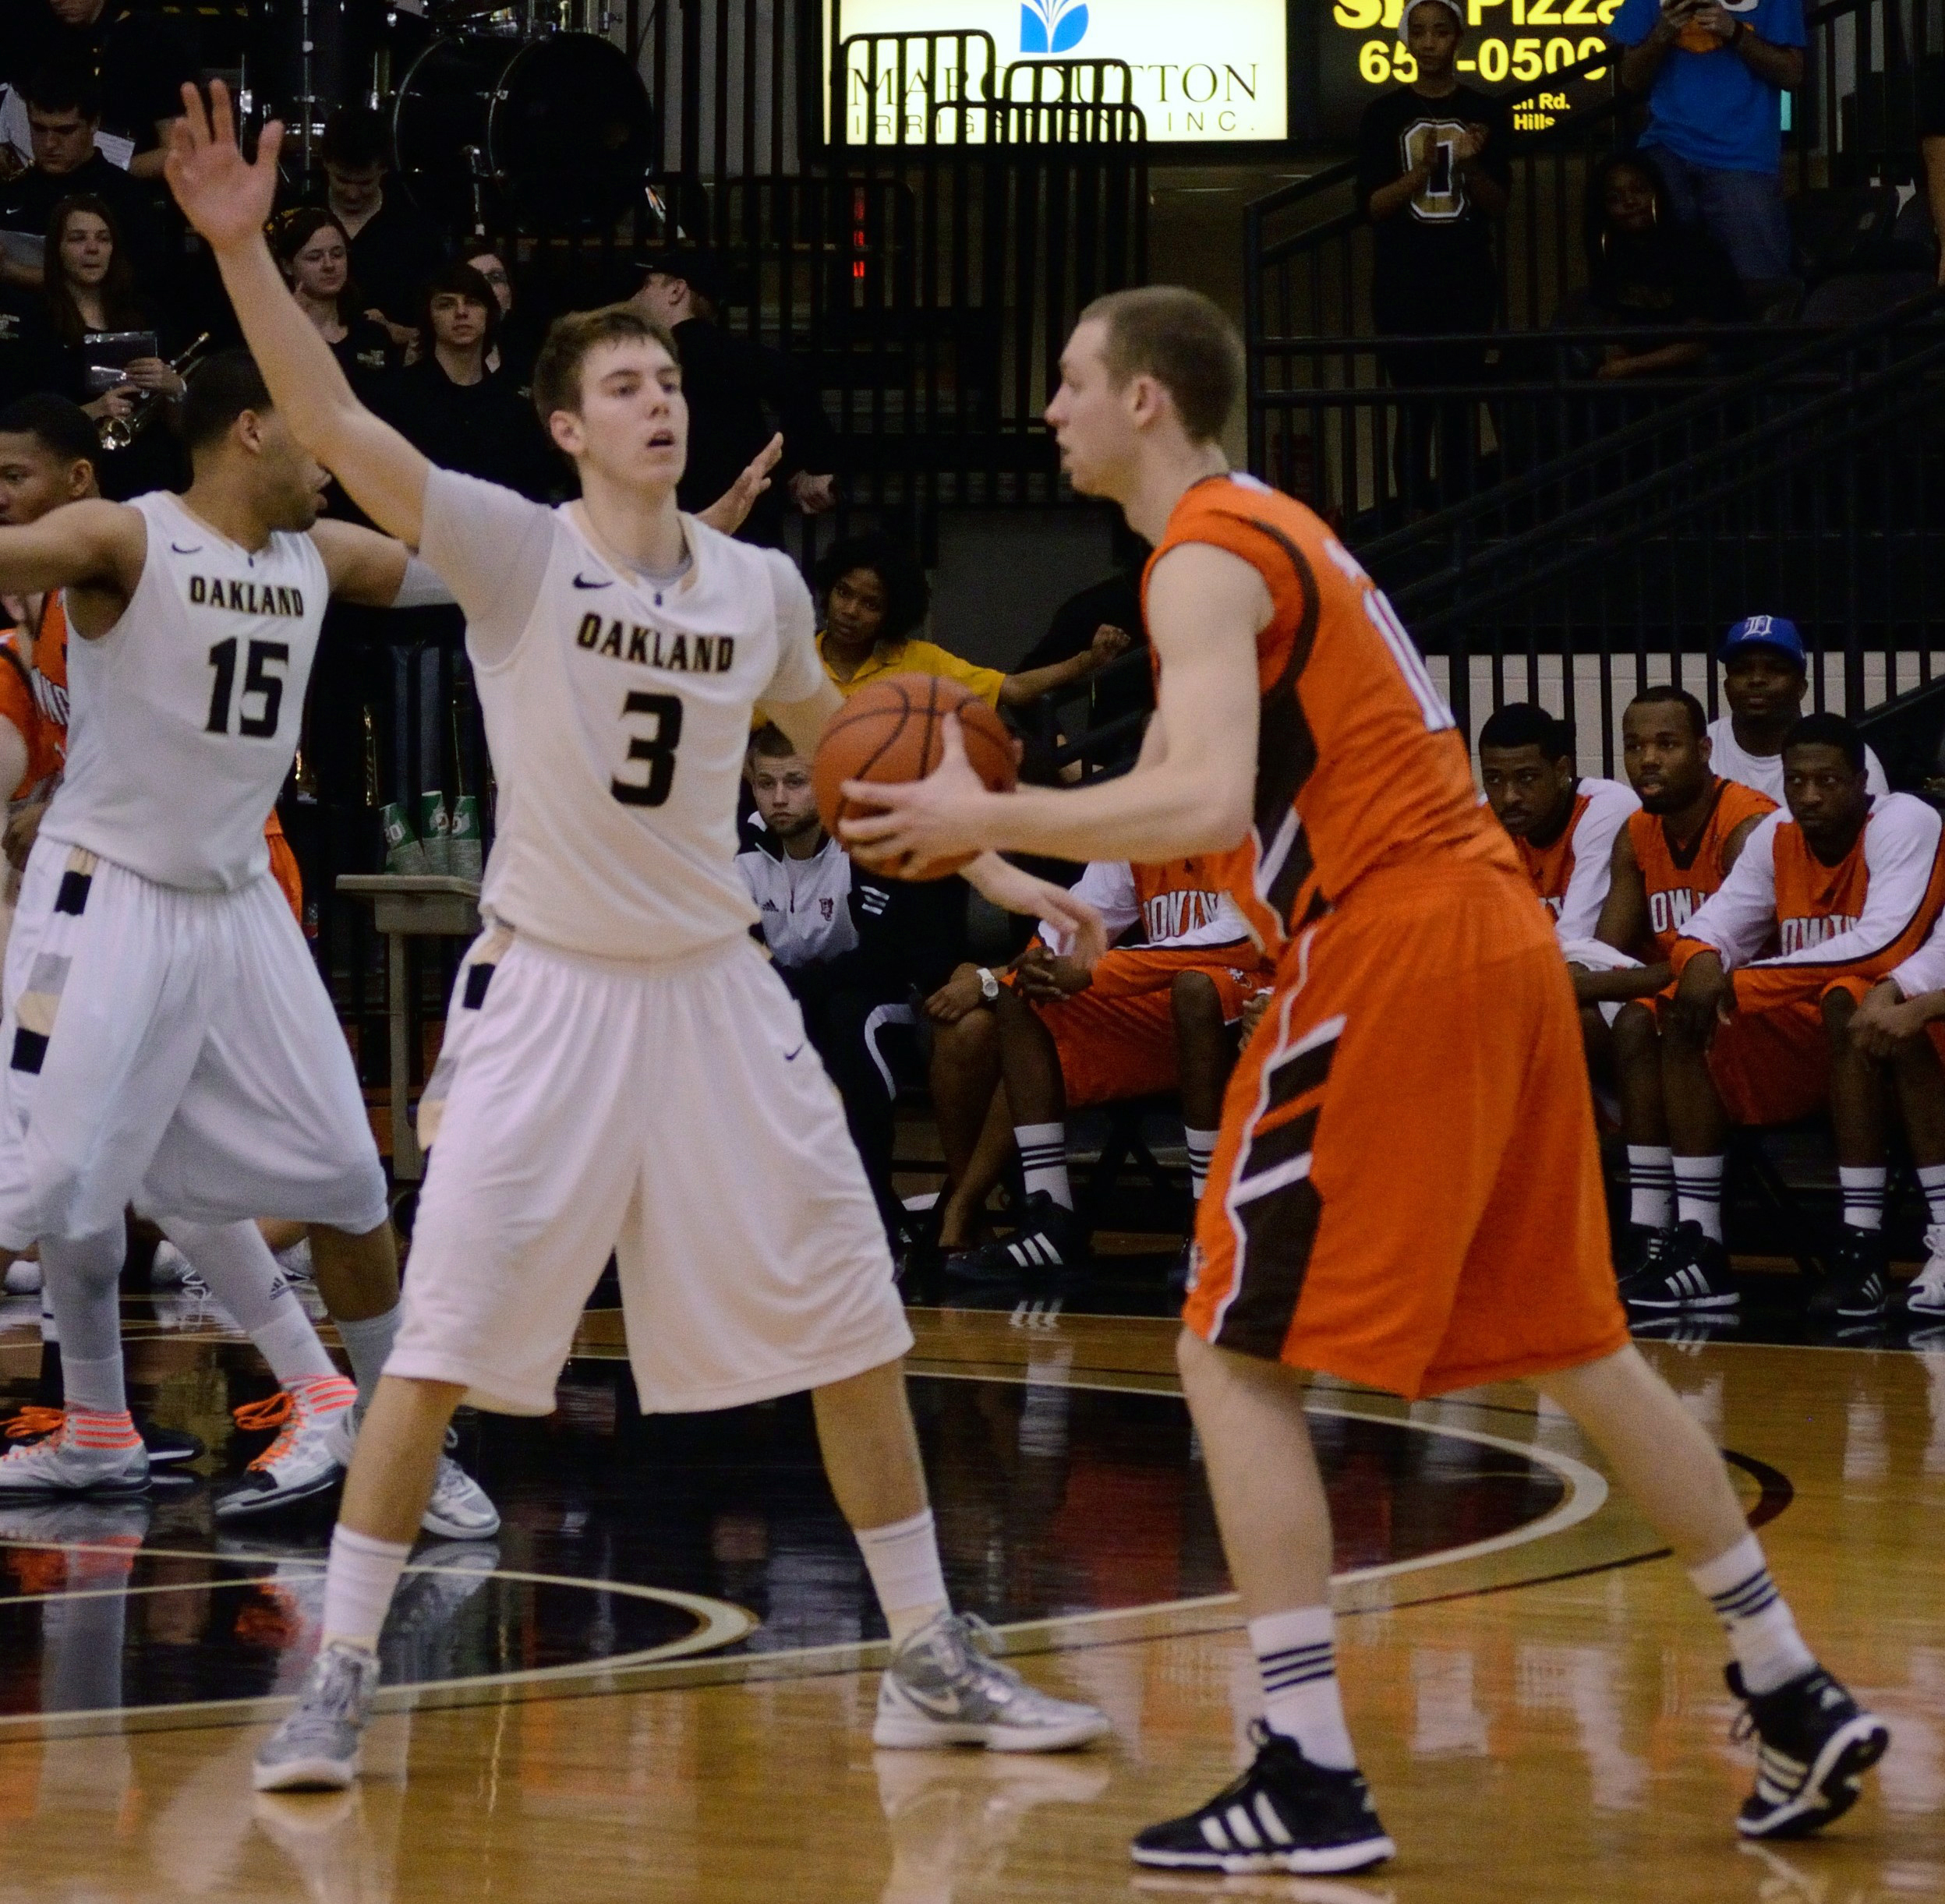 Baeder Vs File Bader Defense Vs Bgsu Cropped Jpg Wikimedia Commons